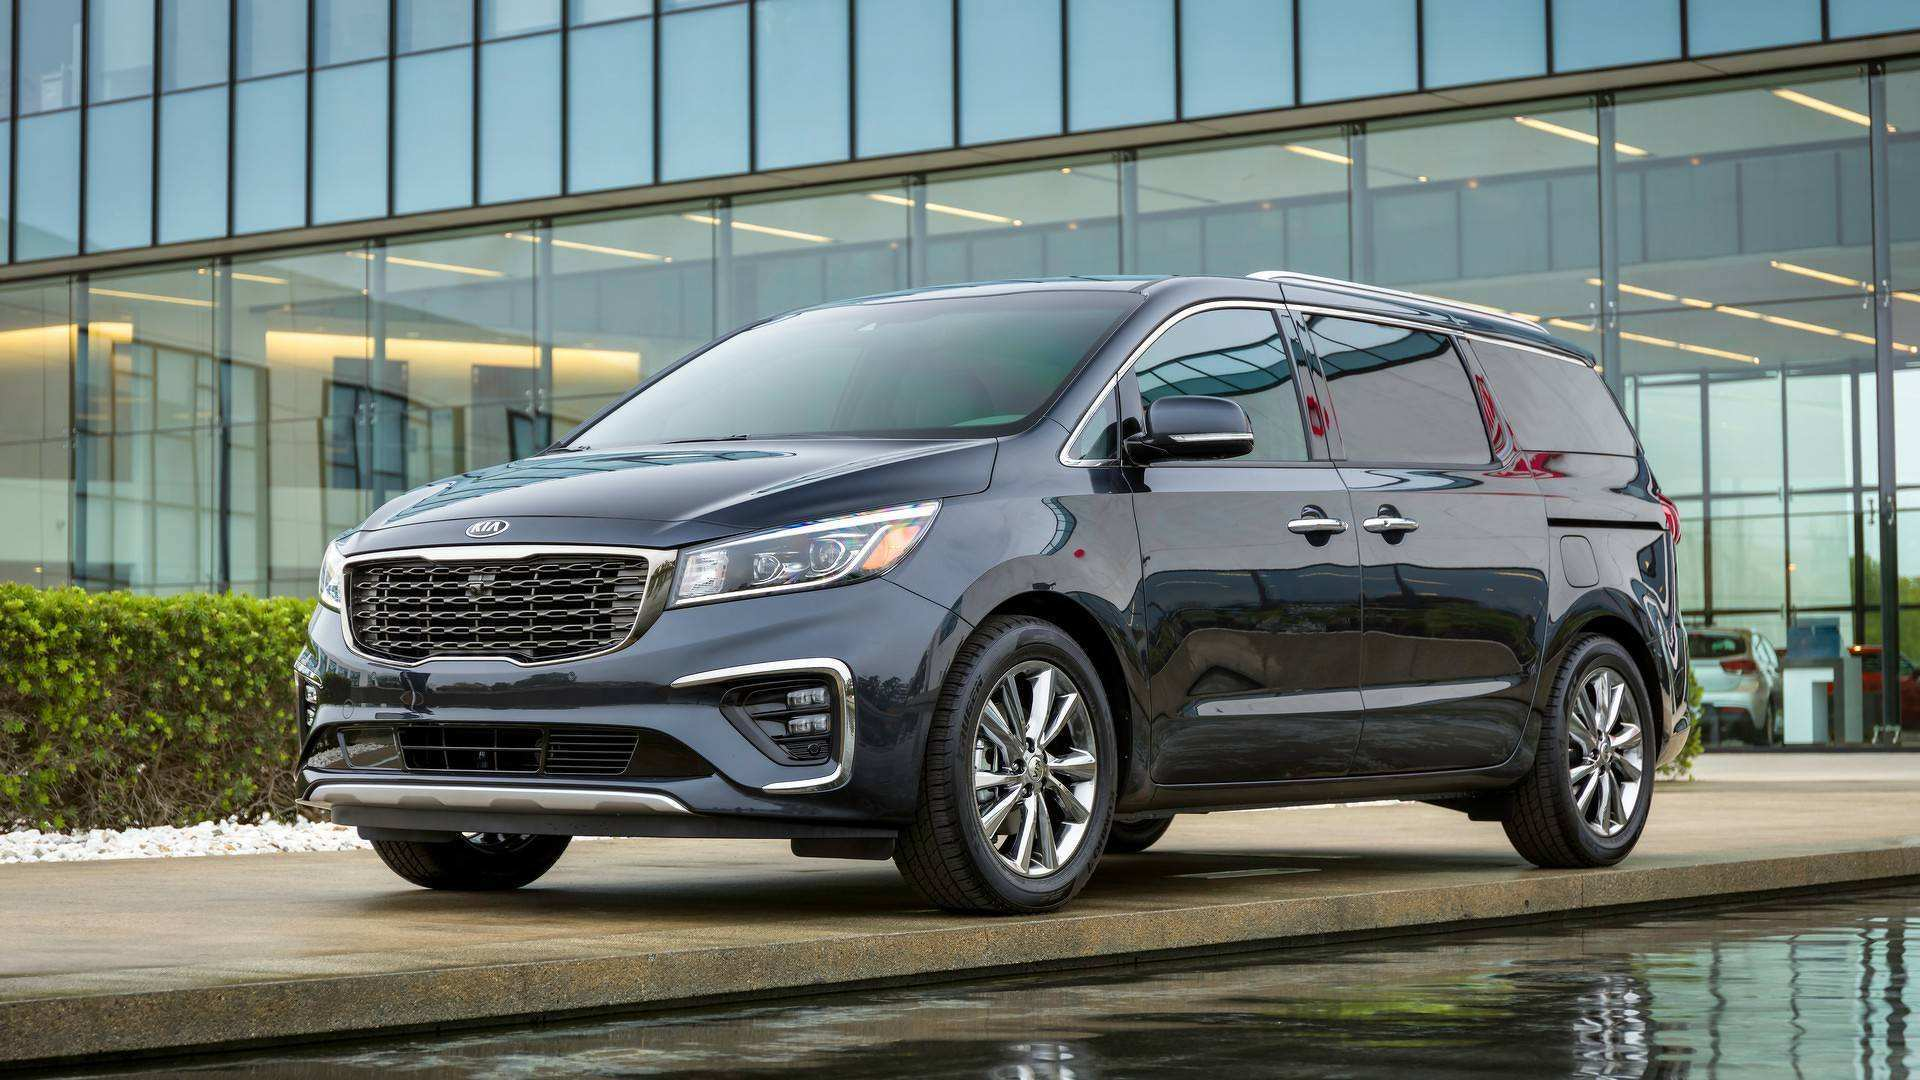 56 Concept of 2020 Kia Grand Carnival New Concept for 2020 Kia Grand Carnival